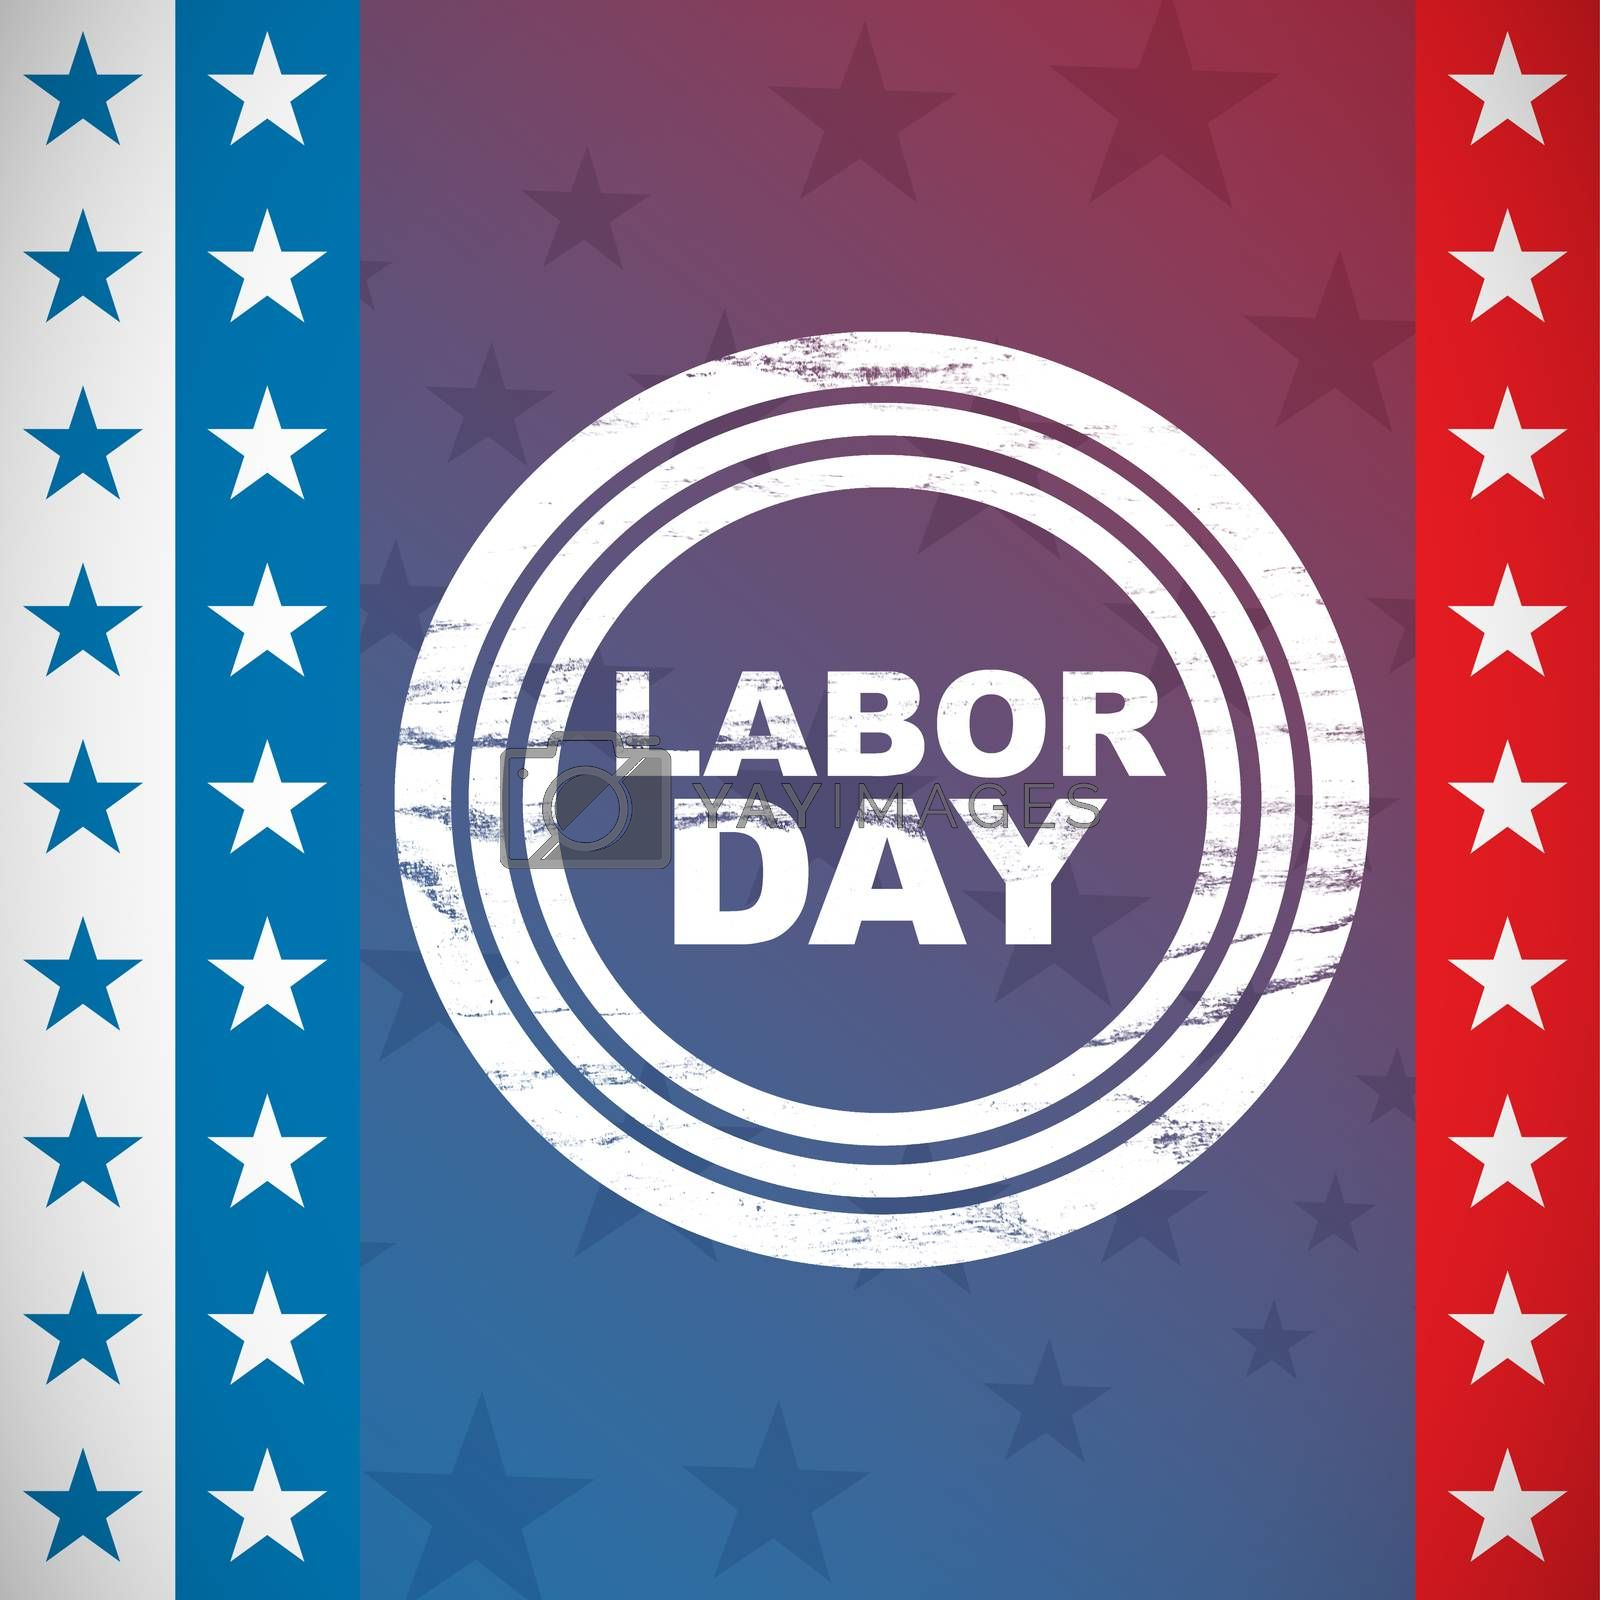 Composite image of labor day text in circles by Wavebreakmedia